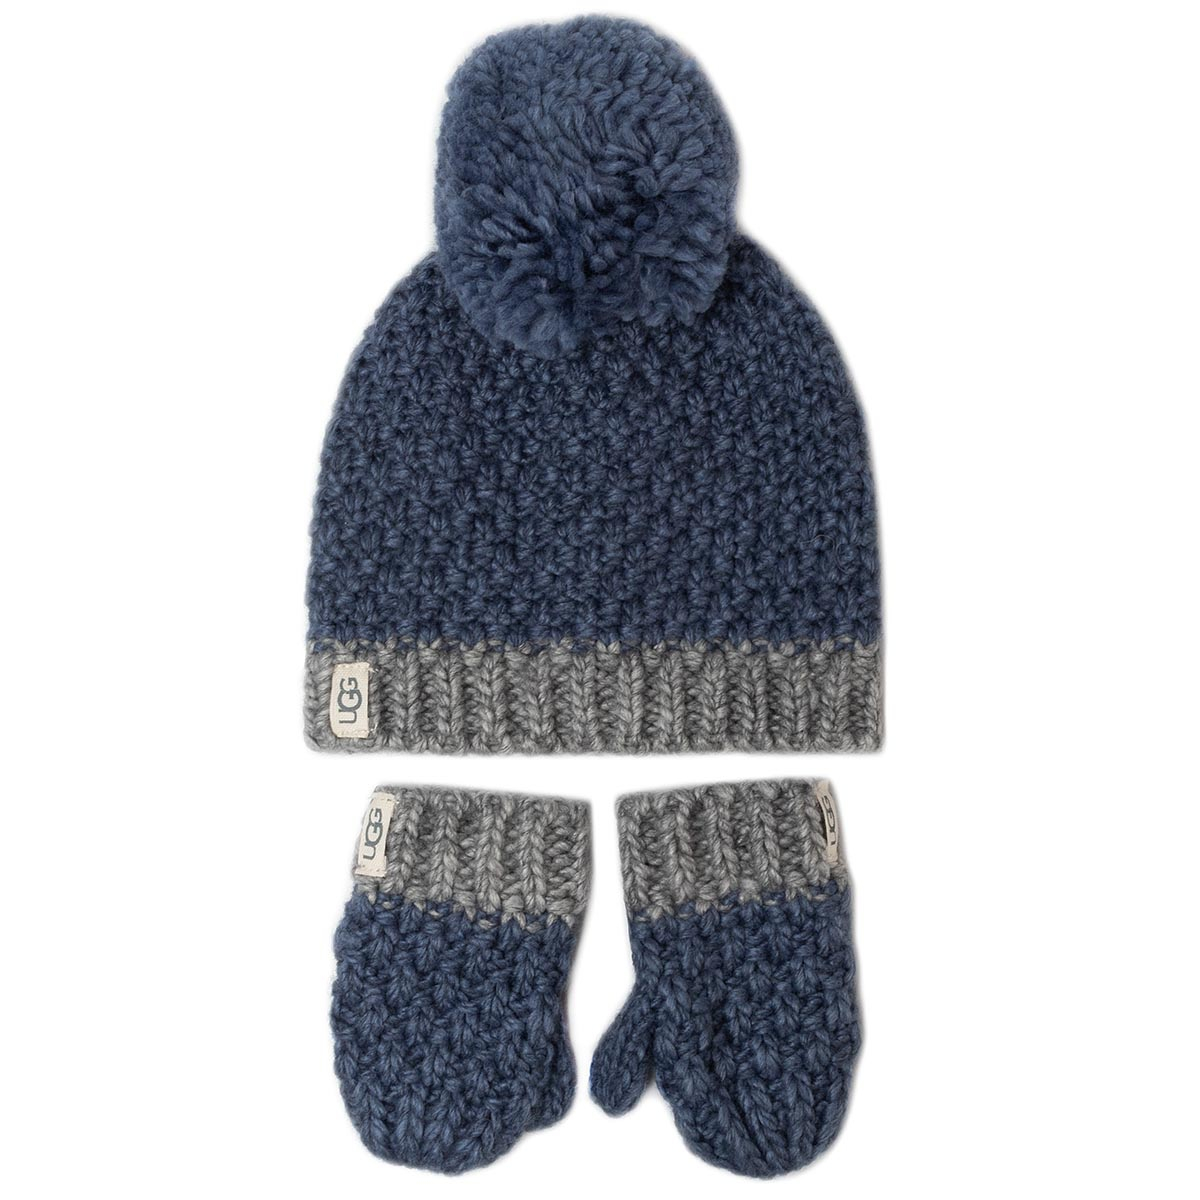 Set Mănuși Și Căciulă Ugg - K Infant Knit Hat And Mitt Set 18802 Ensign Blue imagine epantofi.ro 2021